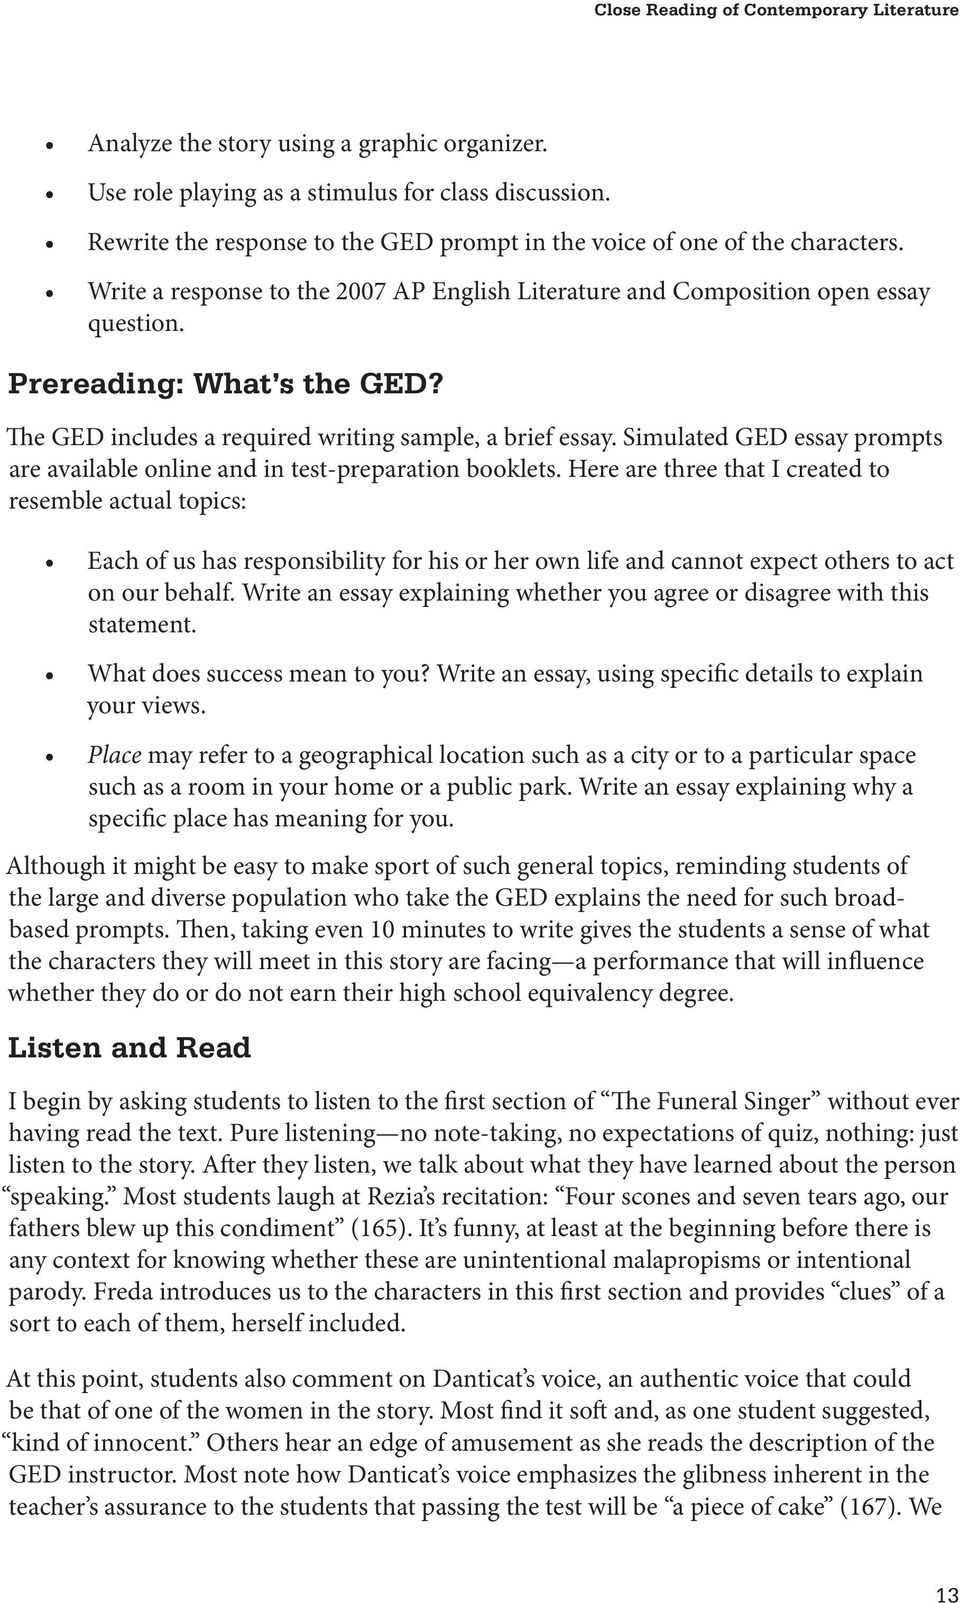 The GED includes a required writing sample, a brief essay. Simulated GED essay prompts are available online and in test-preparation booklets.